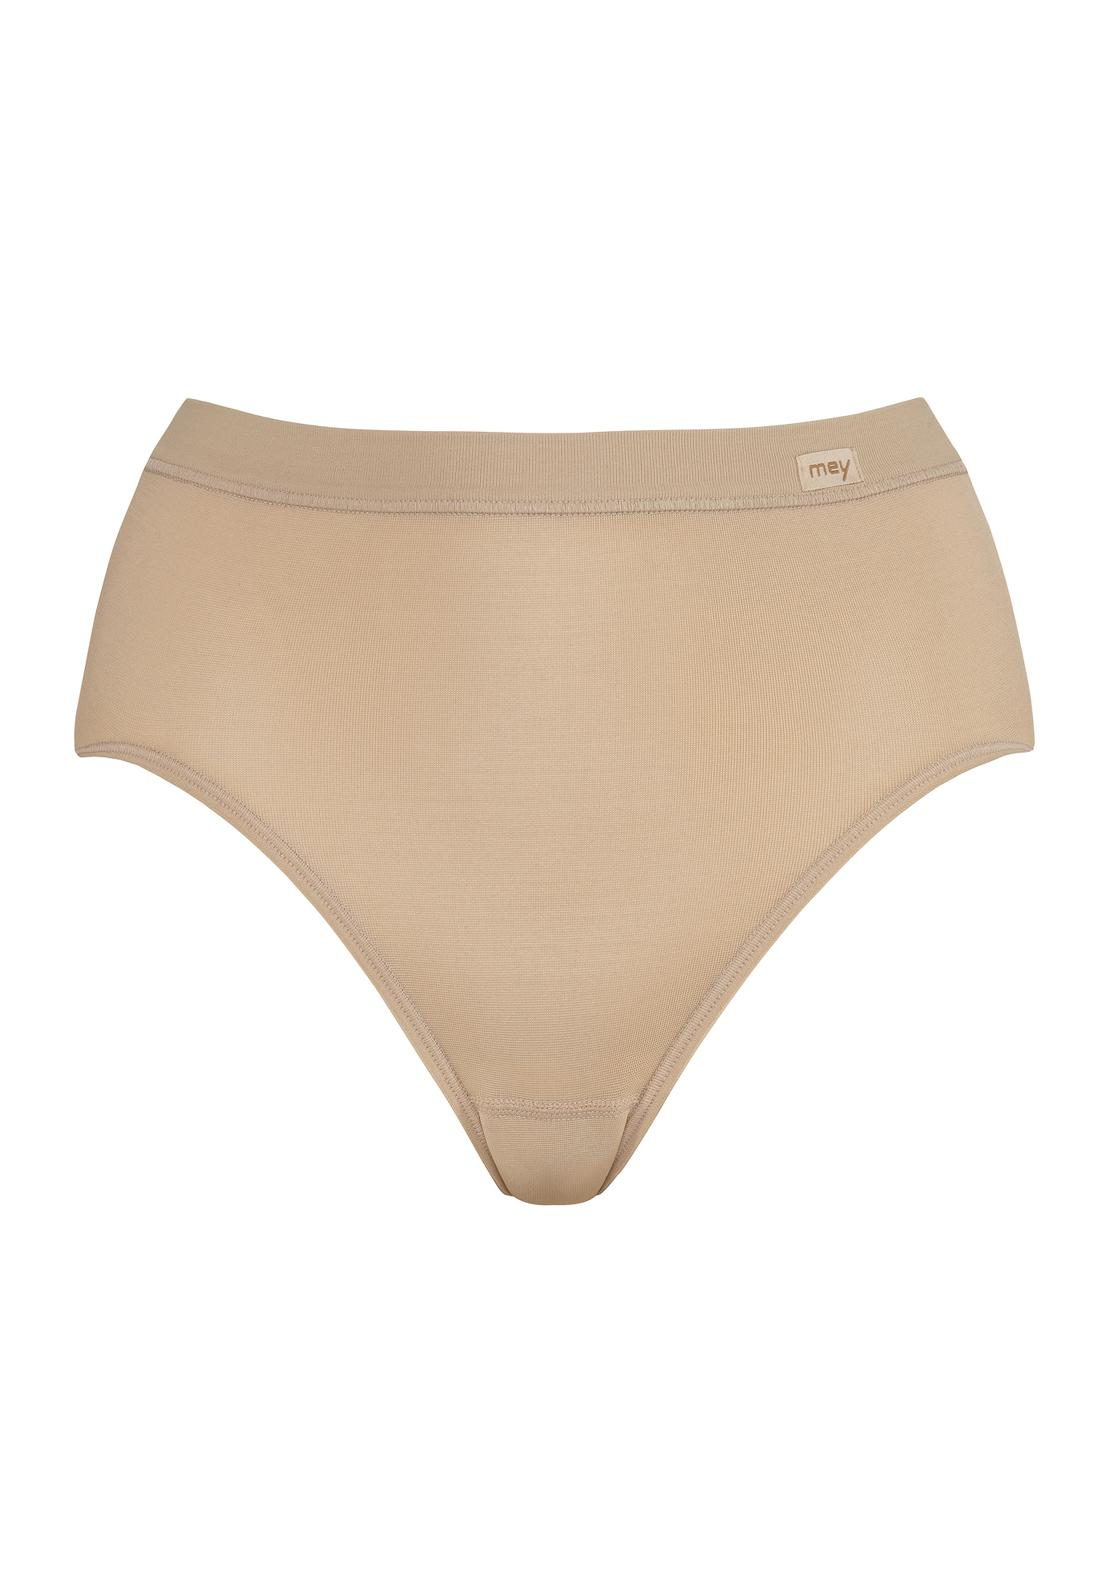 Mey Emotion Weiss Maxi Brief, Nude